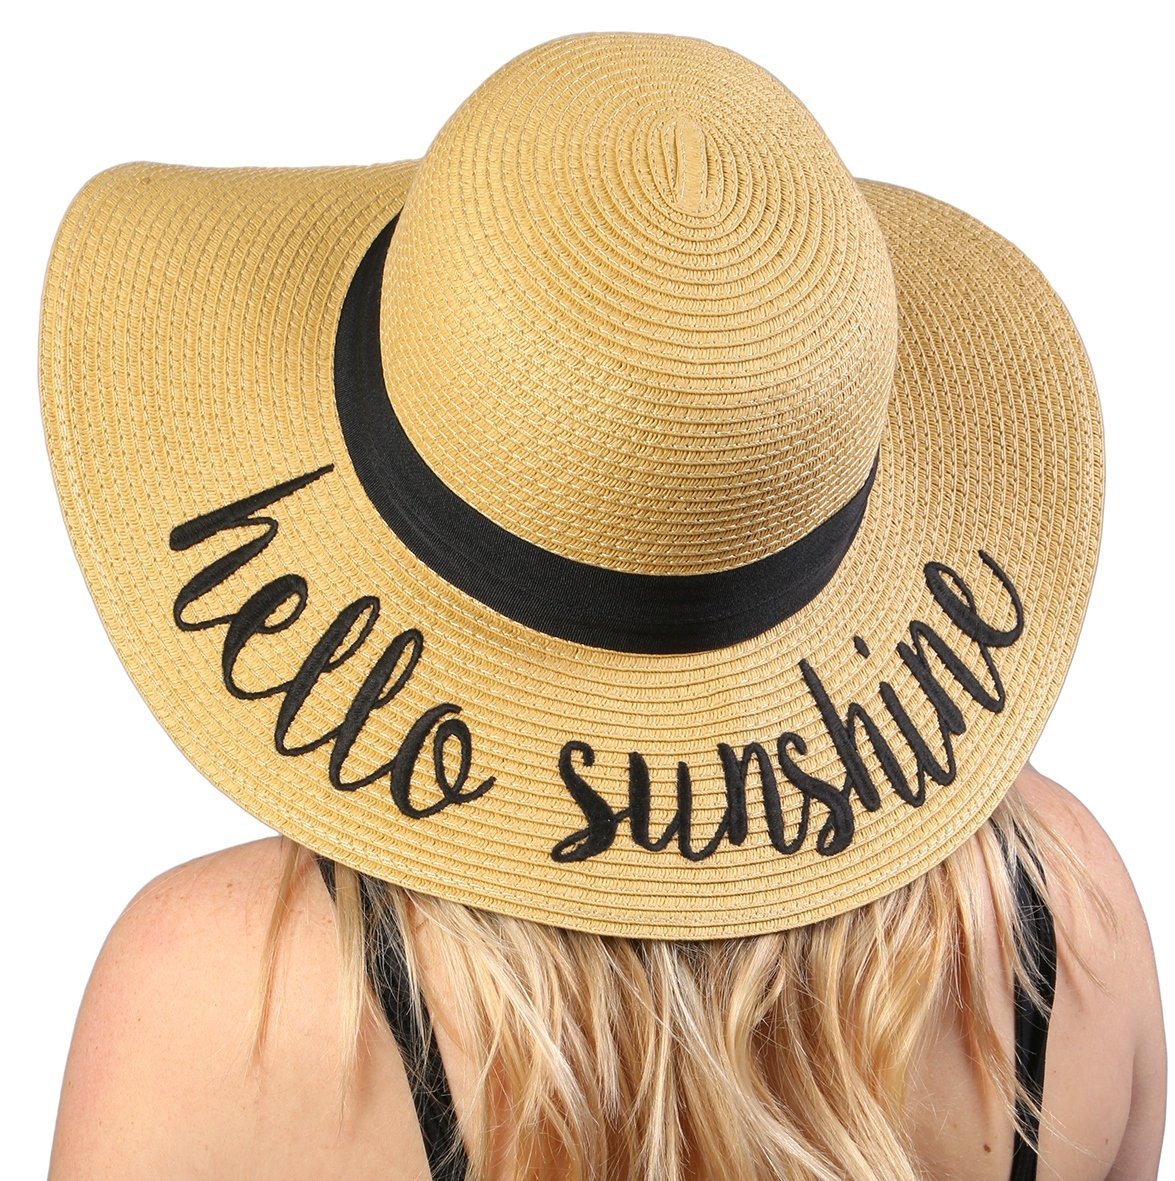 H-2017-HS Funky Junque Embroidered Sun Hat - Hello Sunshine by Funky Junque